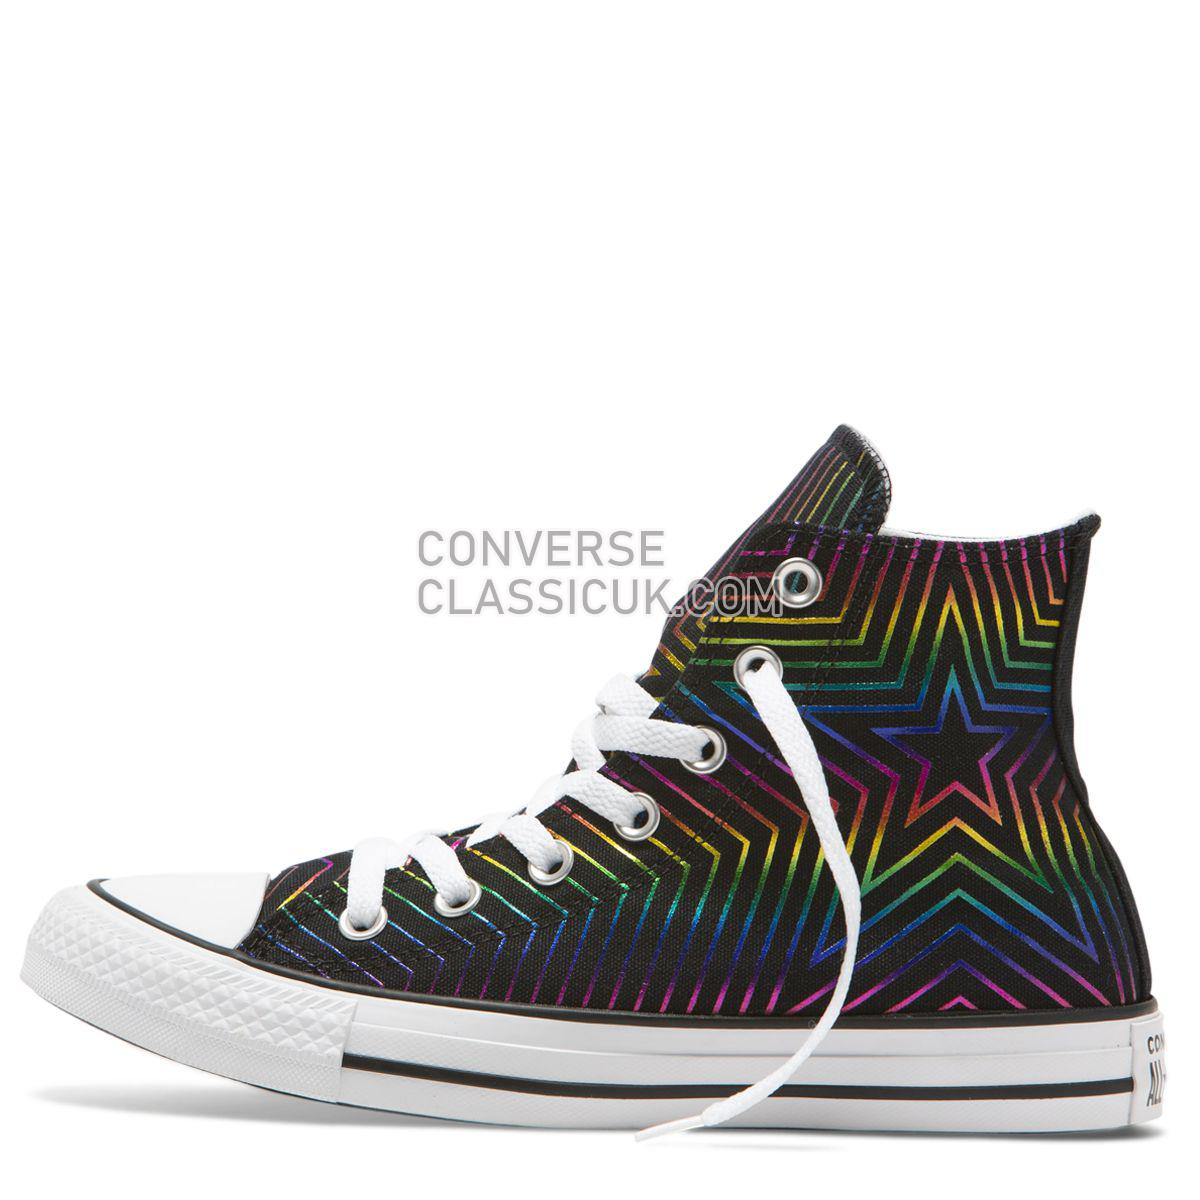 Converse Chuck Taylor All Star All Of The Stars High Top Black Womens 565395 Black/White/White Shoes